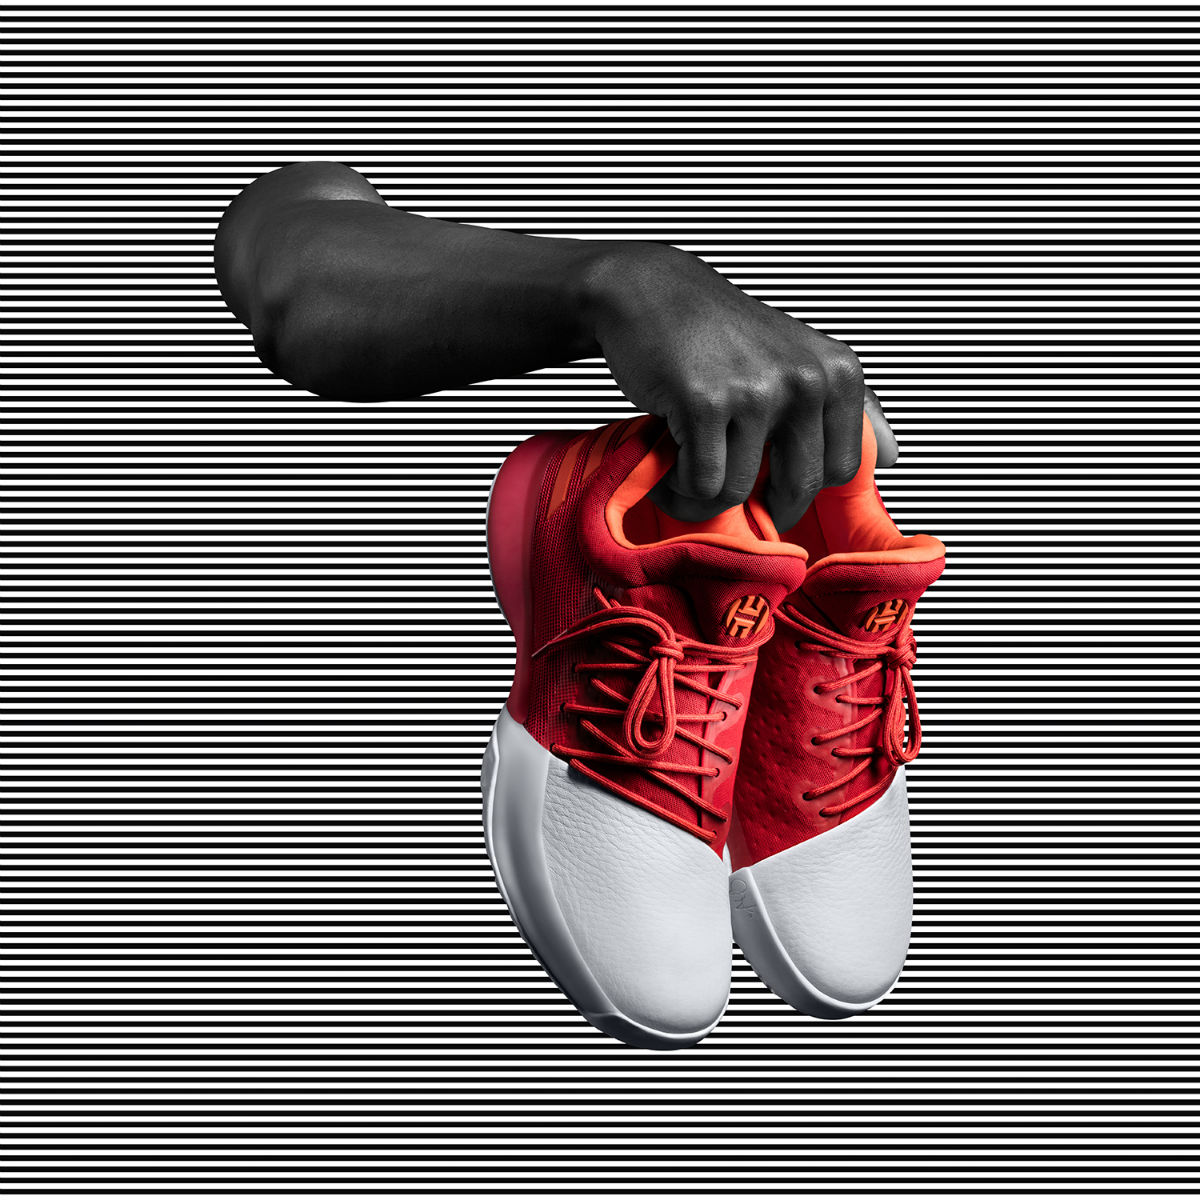 adidas Harden Vol 1 Colorways Home